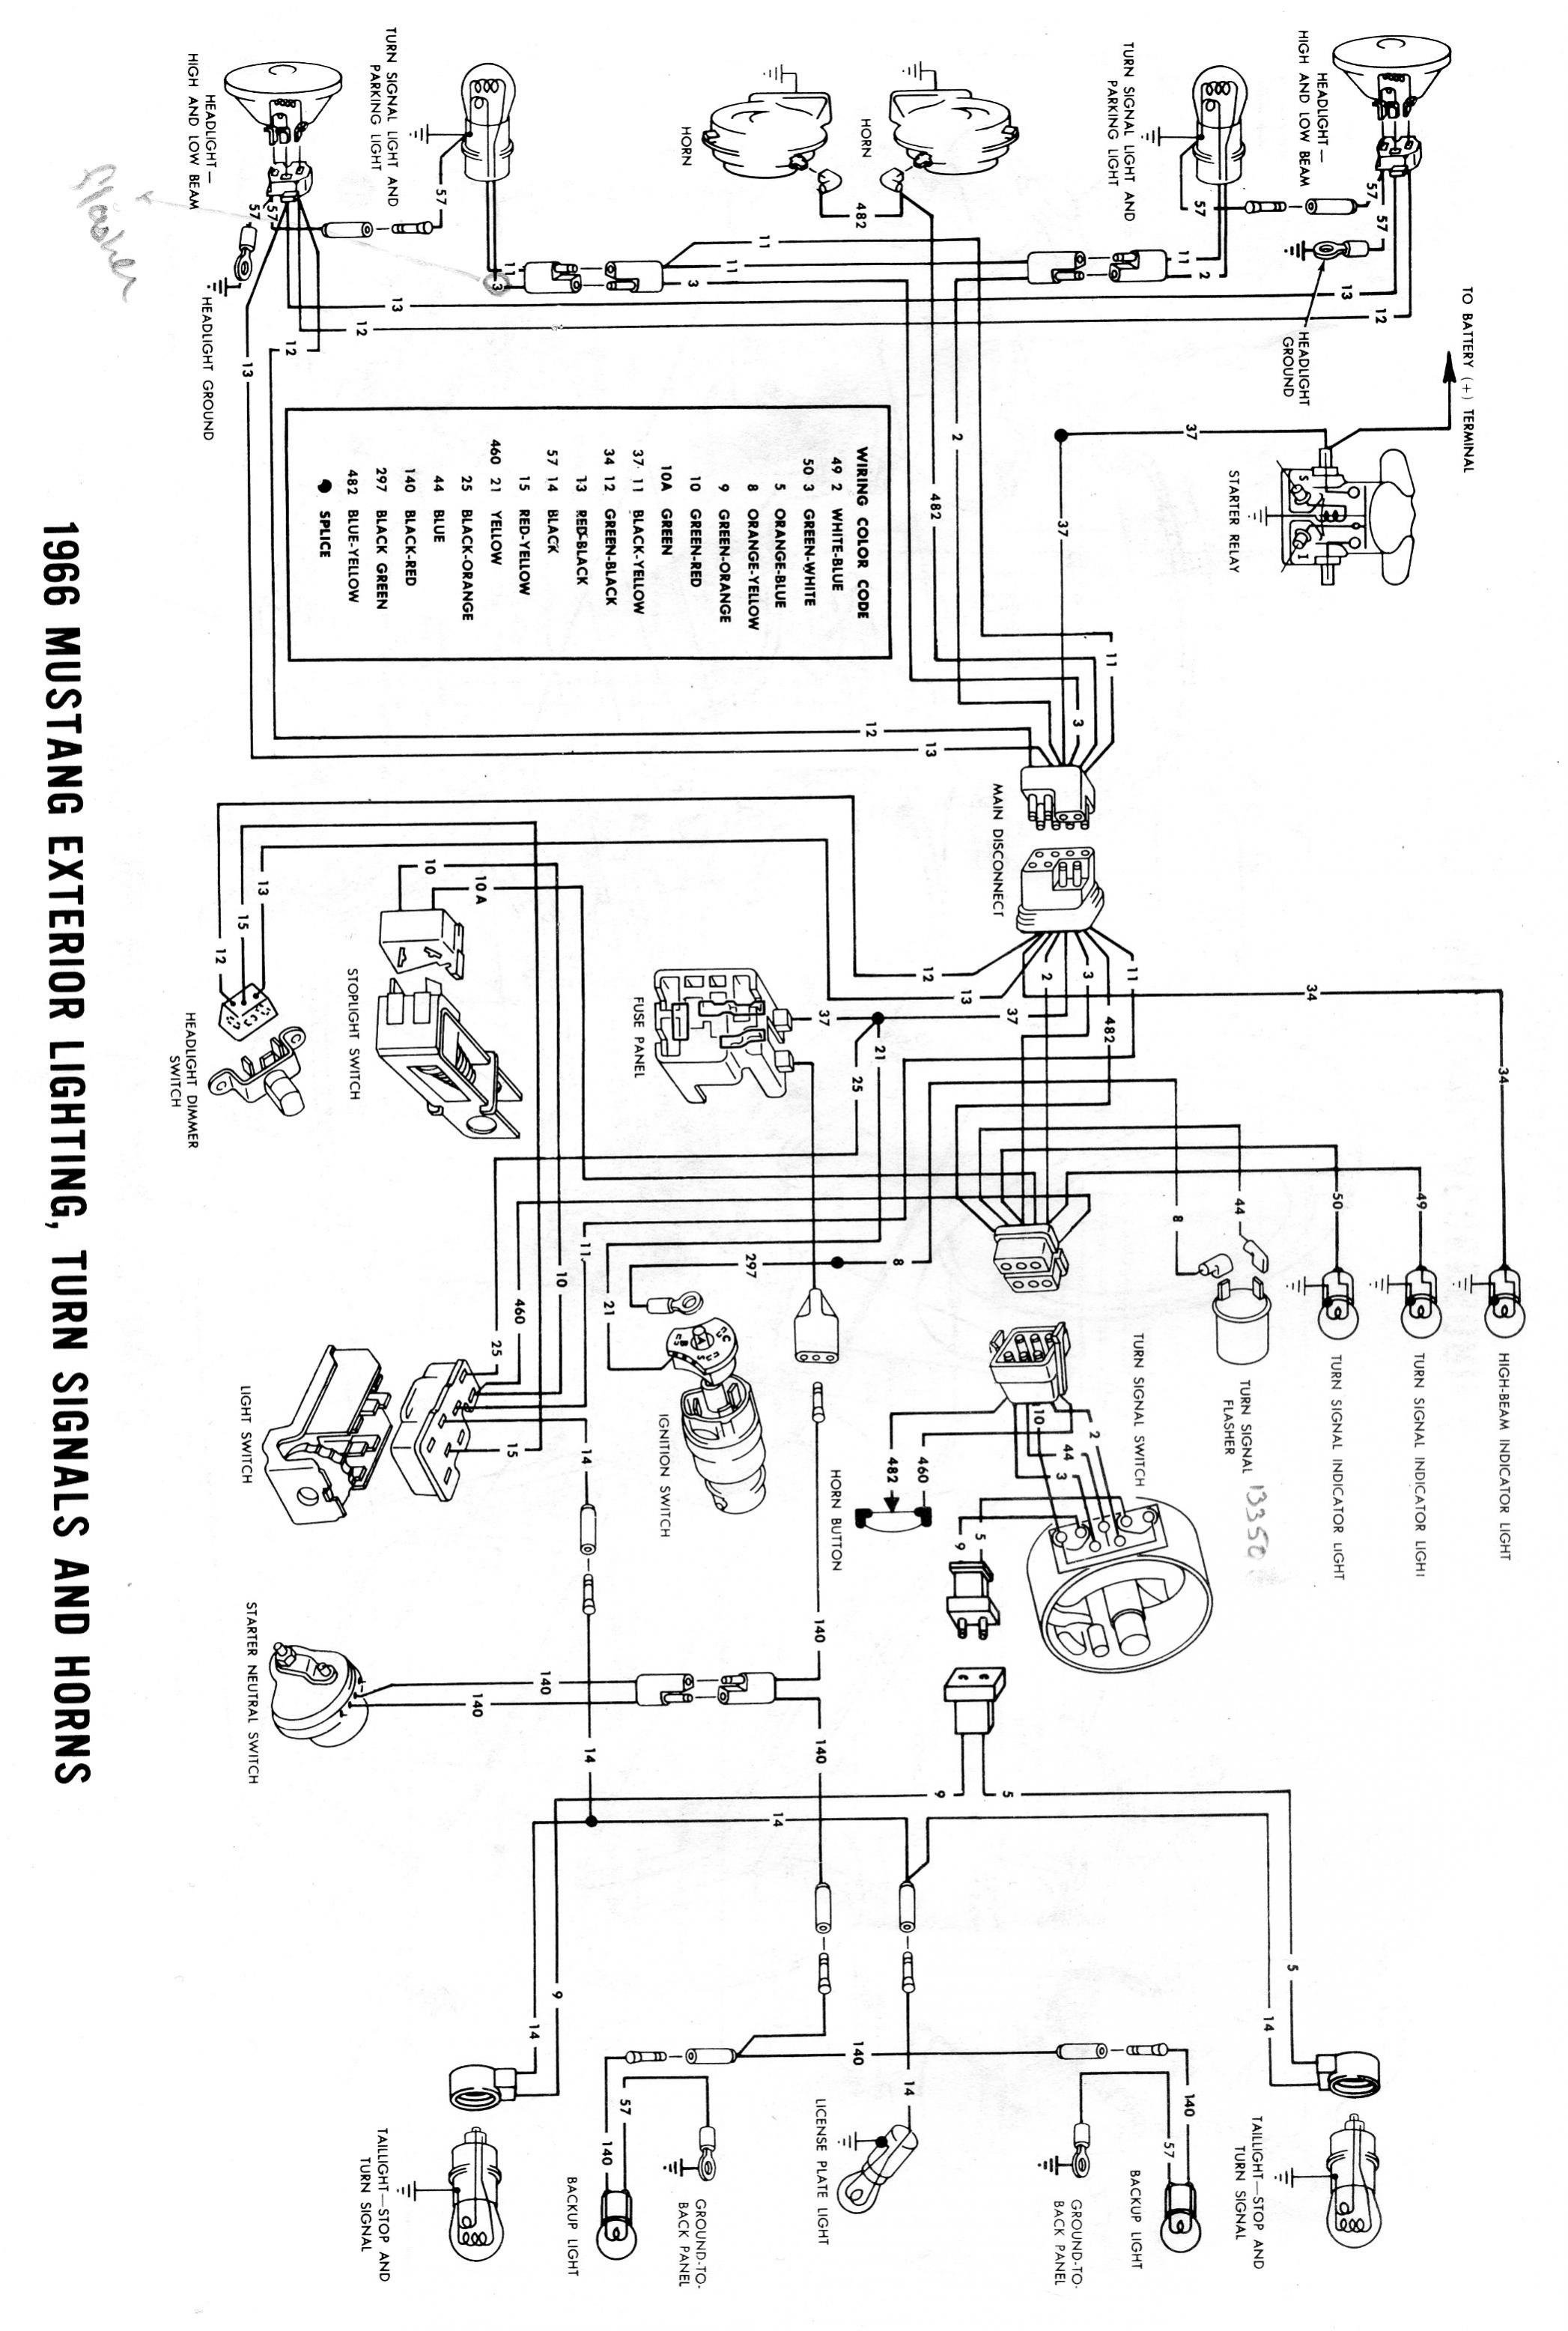 1967 Mustang Wiring Diagram Free Data 1966 Mopar Ignition Dash Switch